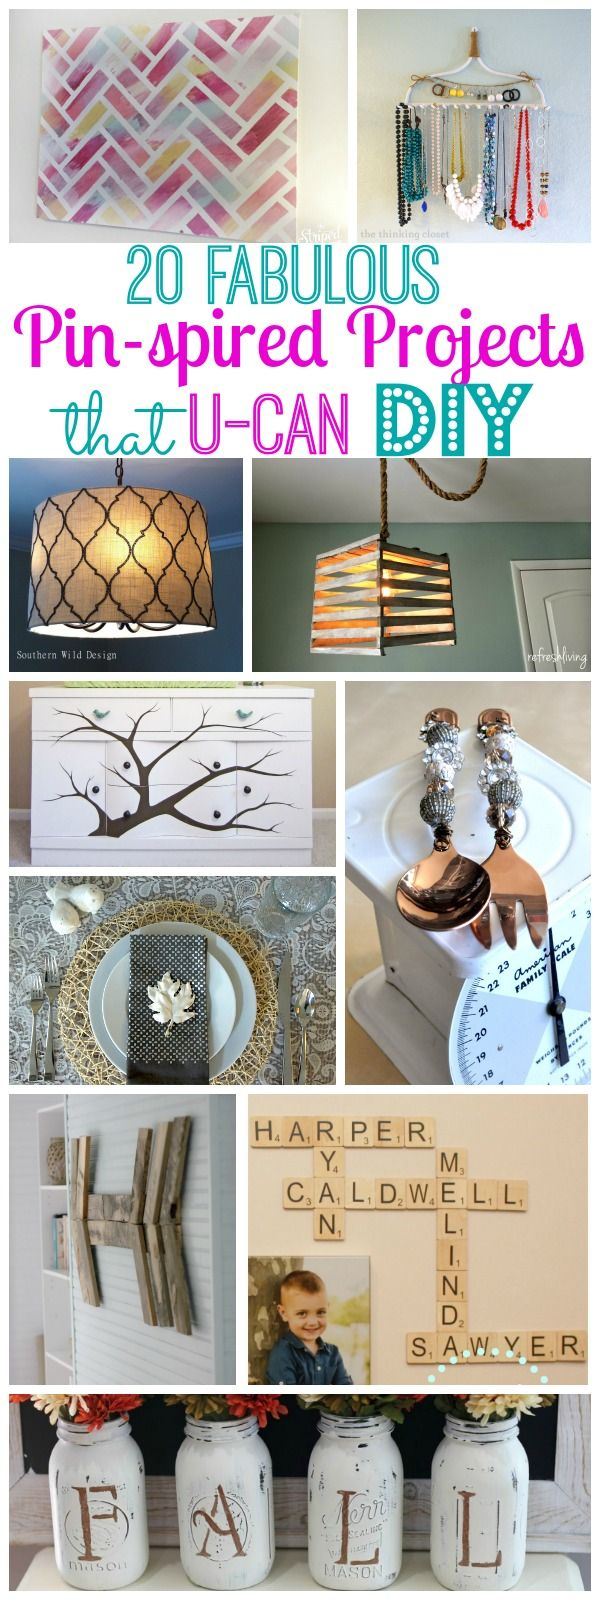 20 Fabulous Pinterest Pin-spired Projects {that you can DIY} - The Happy Housie